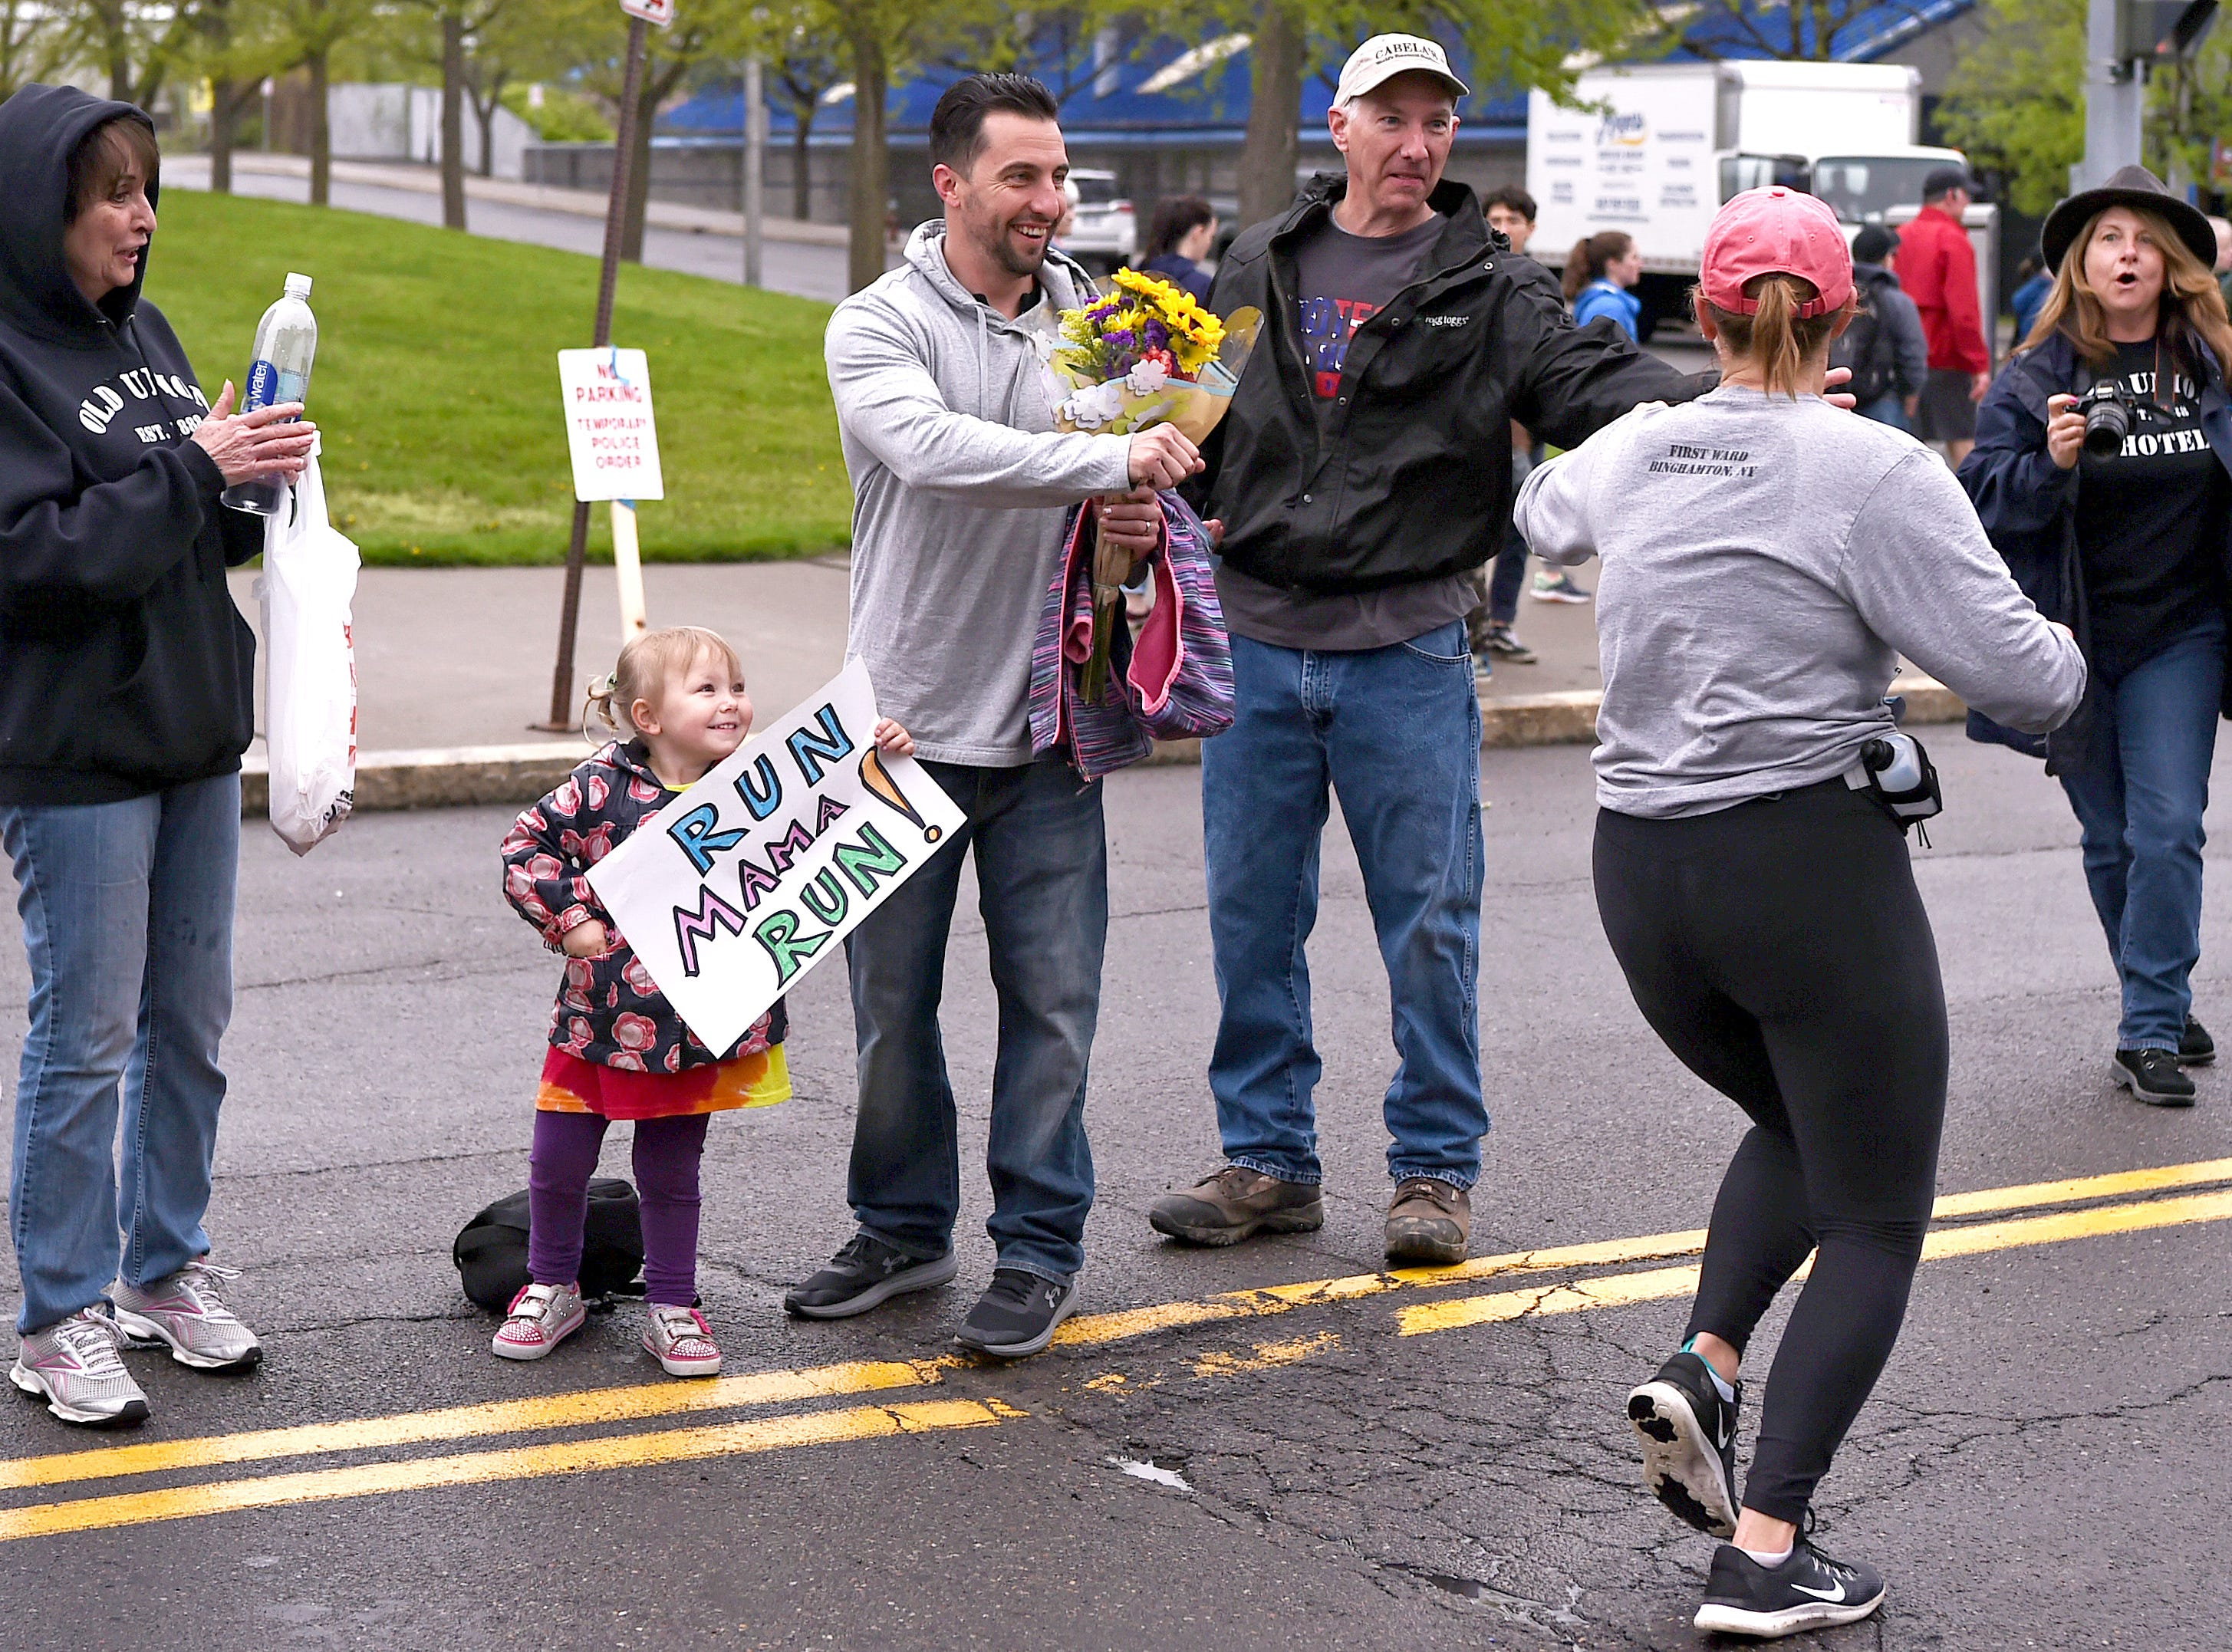 Family and friends cheer on the half marathon runners near the finish line during the Greater Binghamton Bridge Run Half Marathon and 5K, Sunday, May 5, 2019.